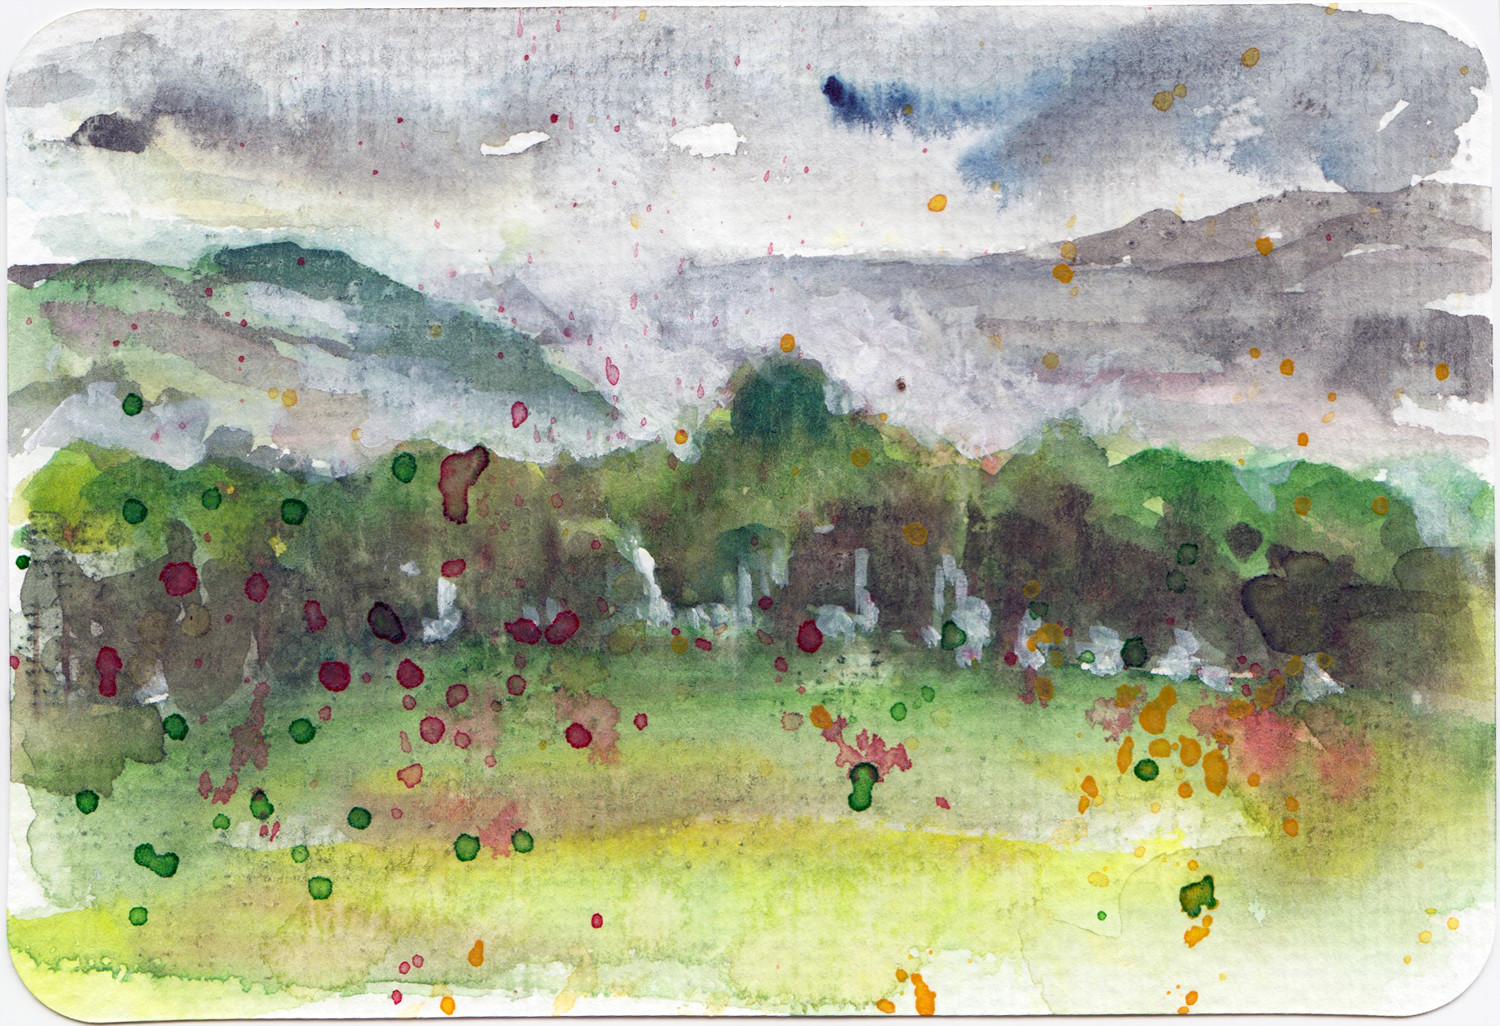 Summer Storm Landscape Postcard in watercolour by Sophie Peanut